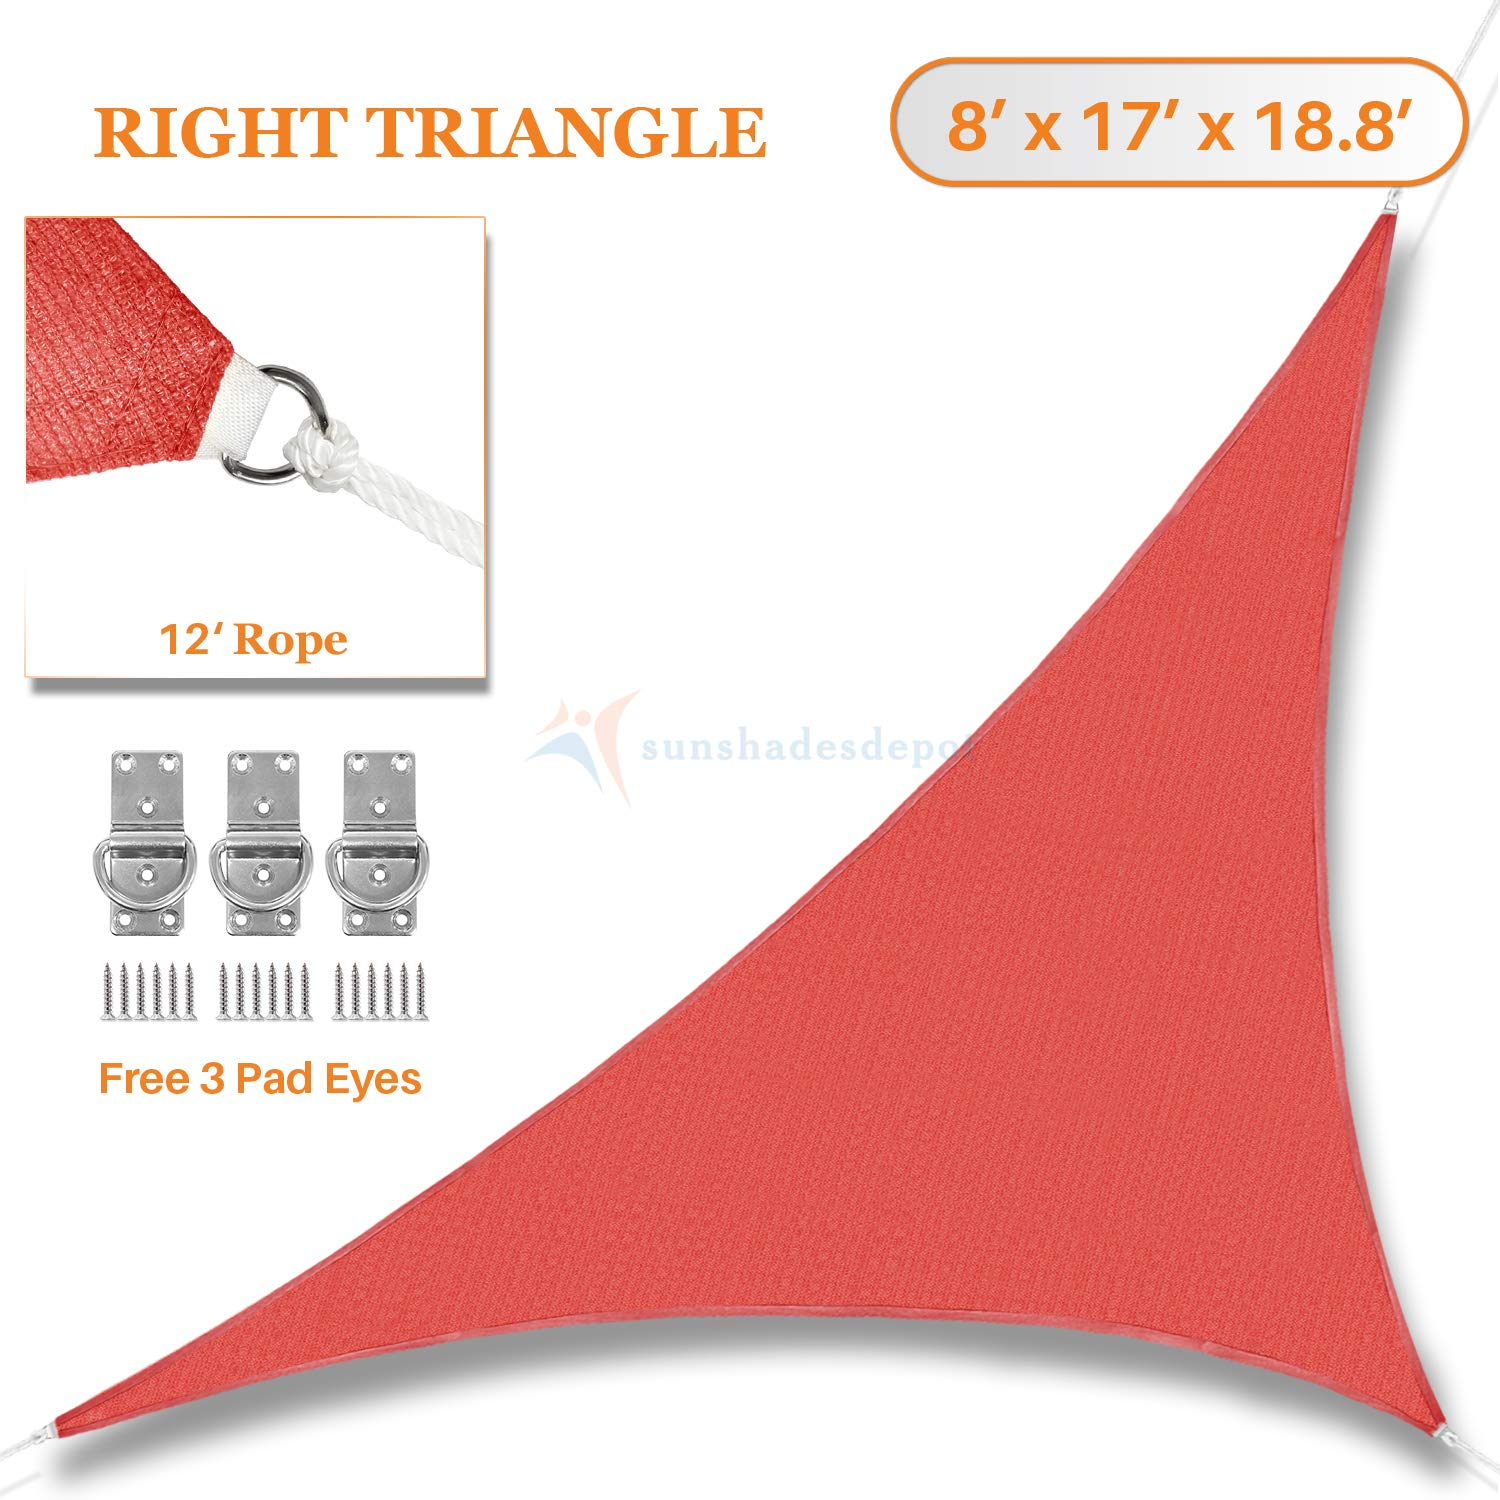 Sunshades Depot 8' x 17' x 18.8' Sun Shade Sail 180 GSM Right Triangle Permeable Canopy Rust Red Custom Commercial Standard